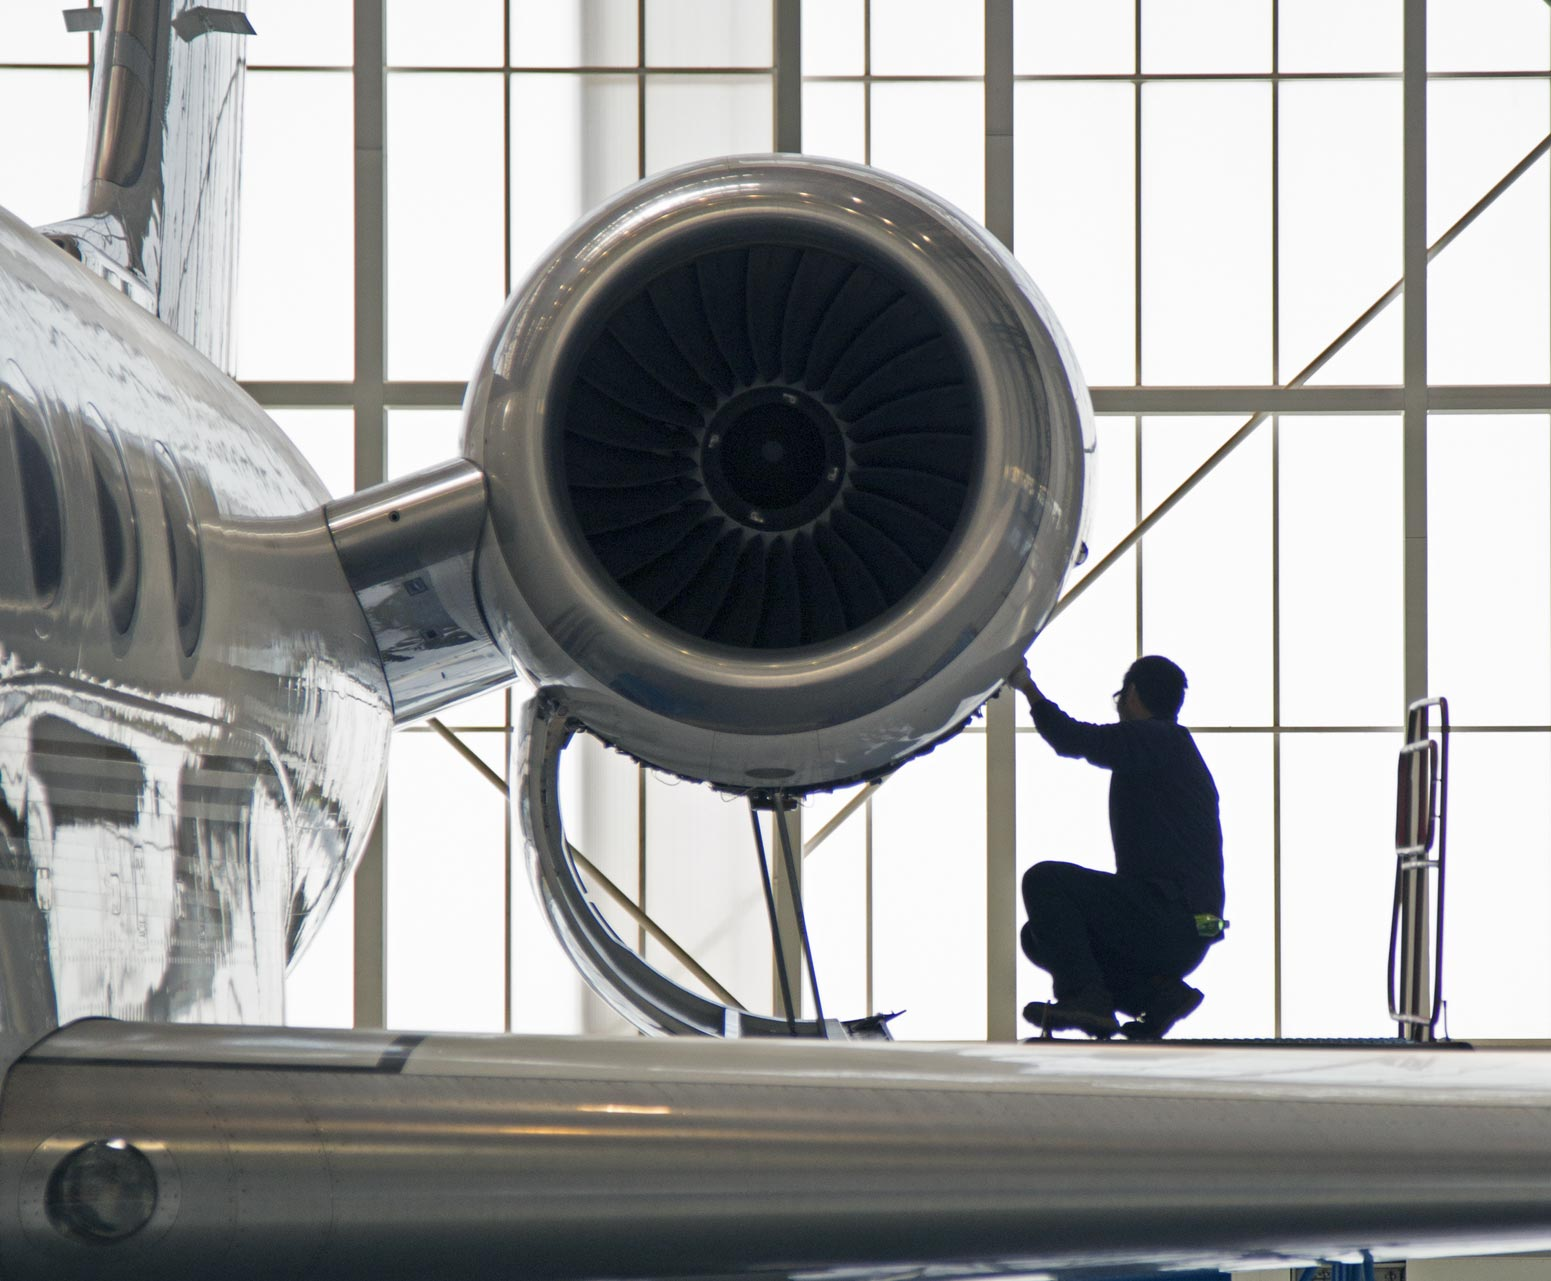 Aircraft technician working on a plane engine